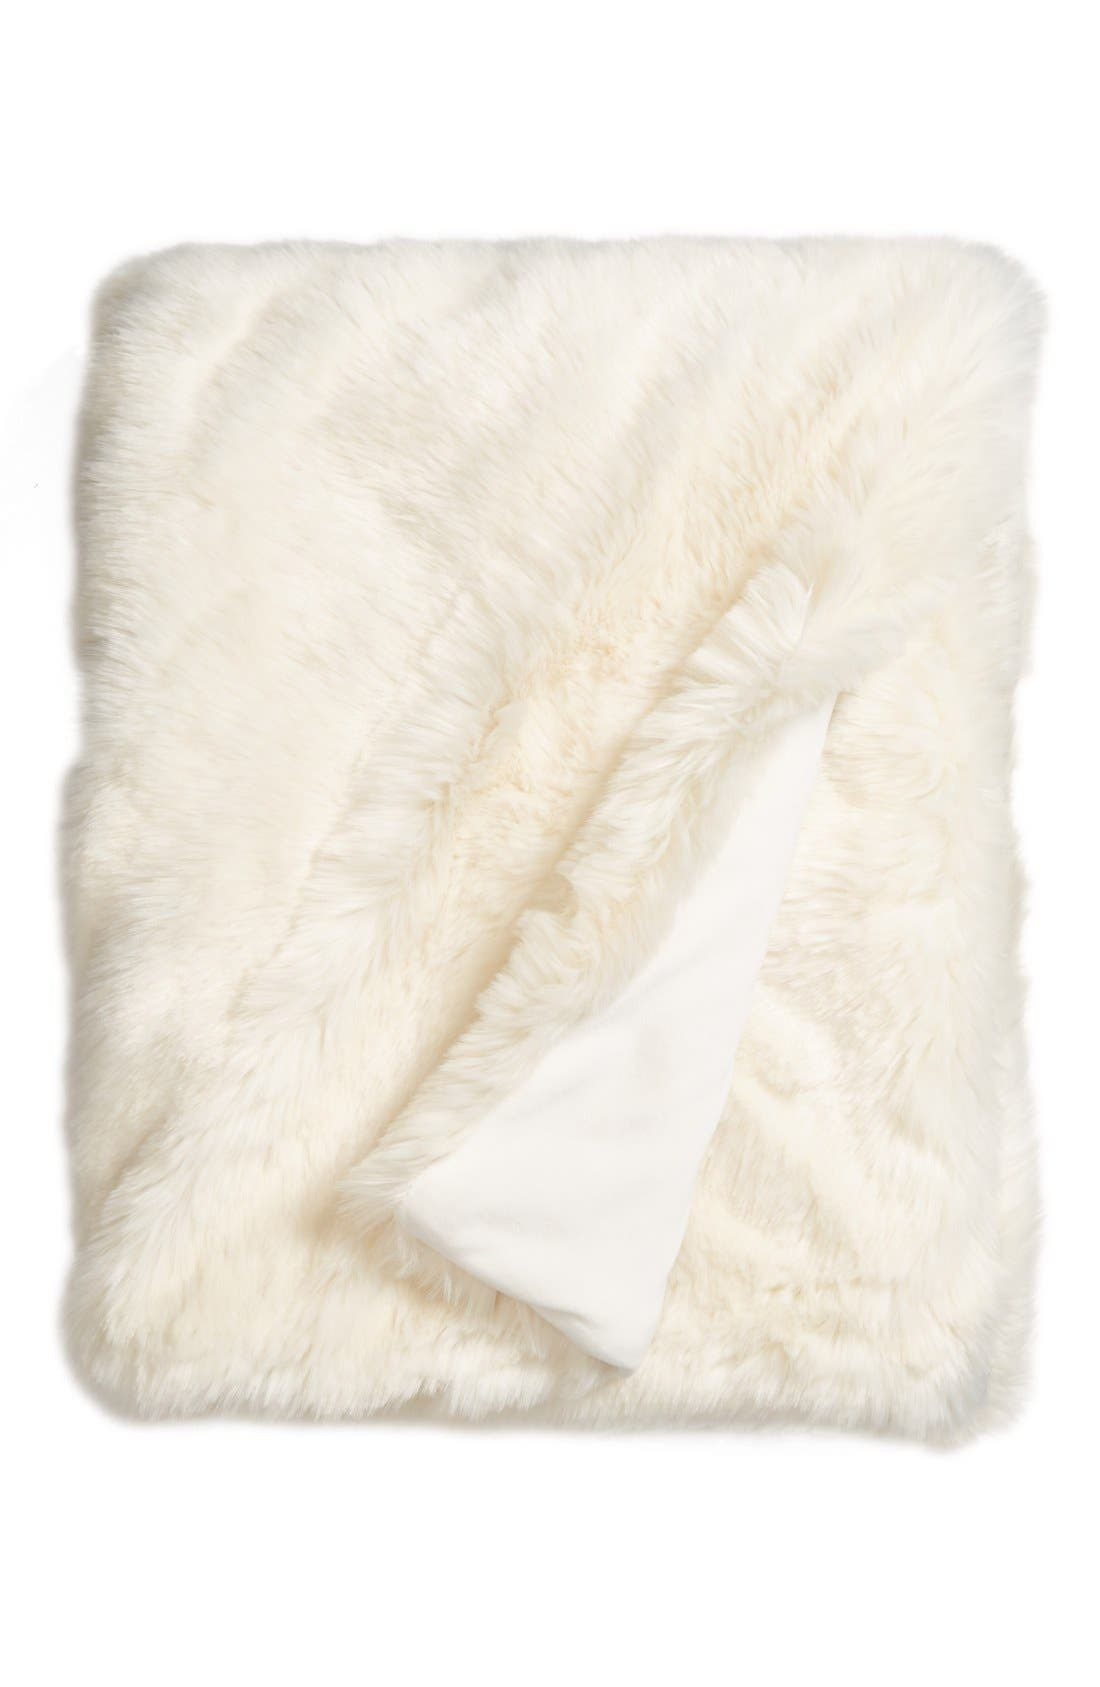 NORDSTROM AT HOME, Cuddle Up Faux Fur Throw Blanket, Main thumbnail 1, color, IVORY